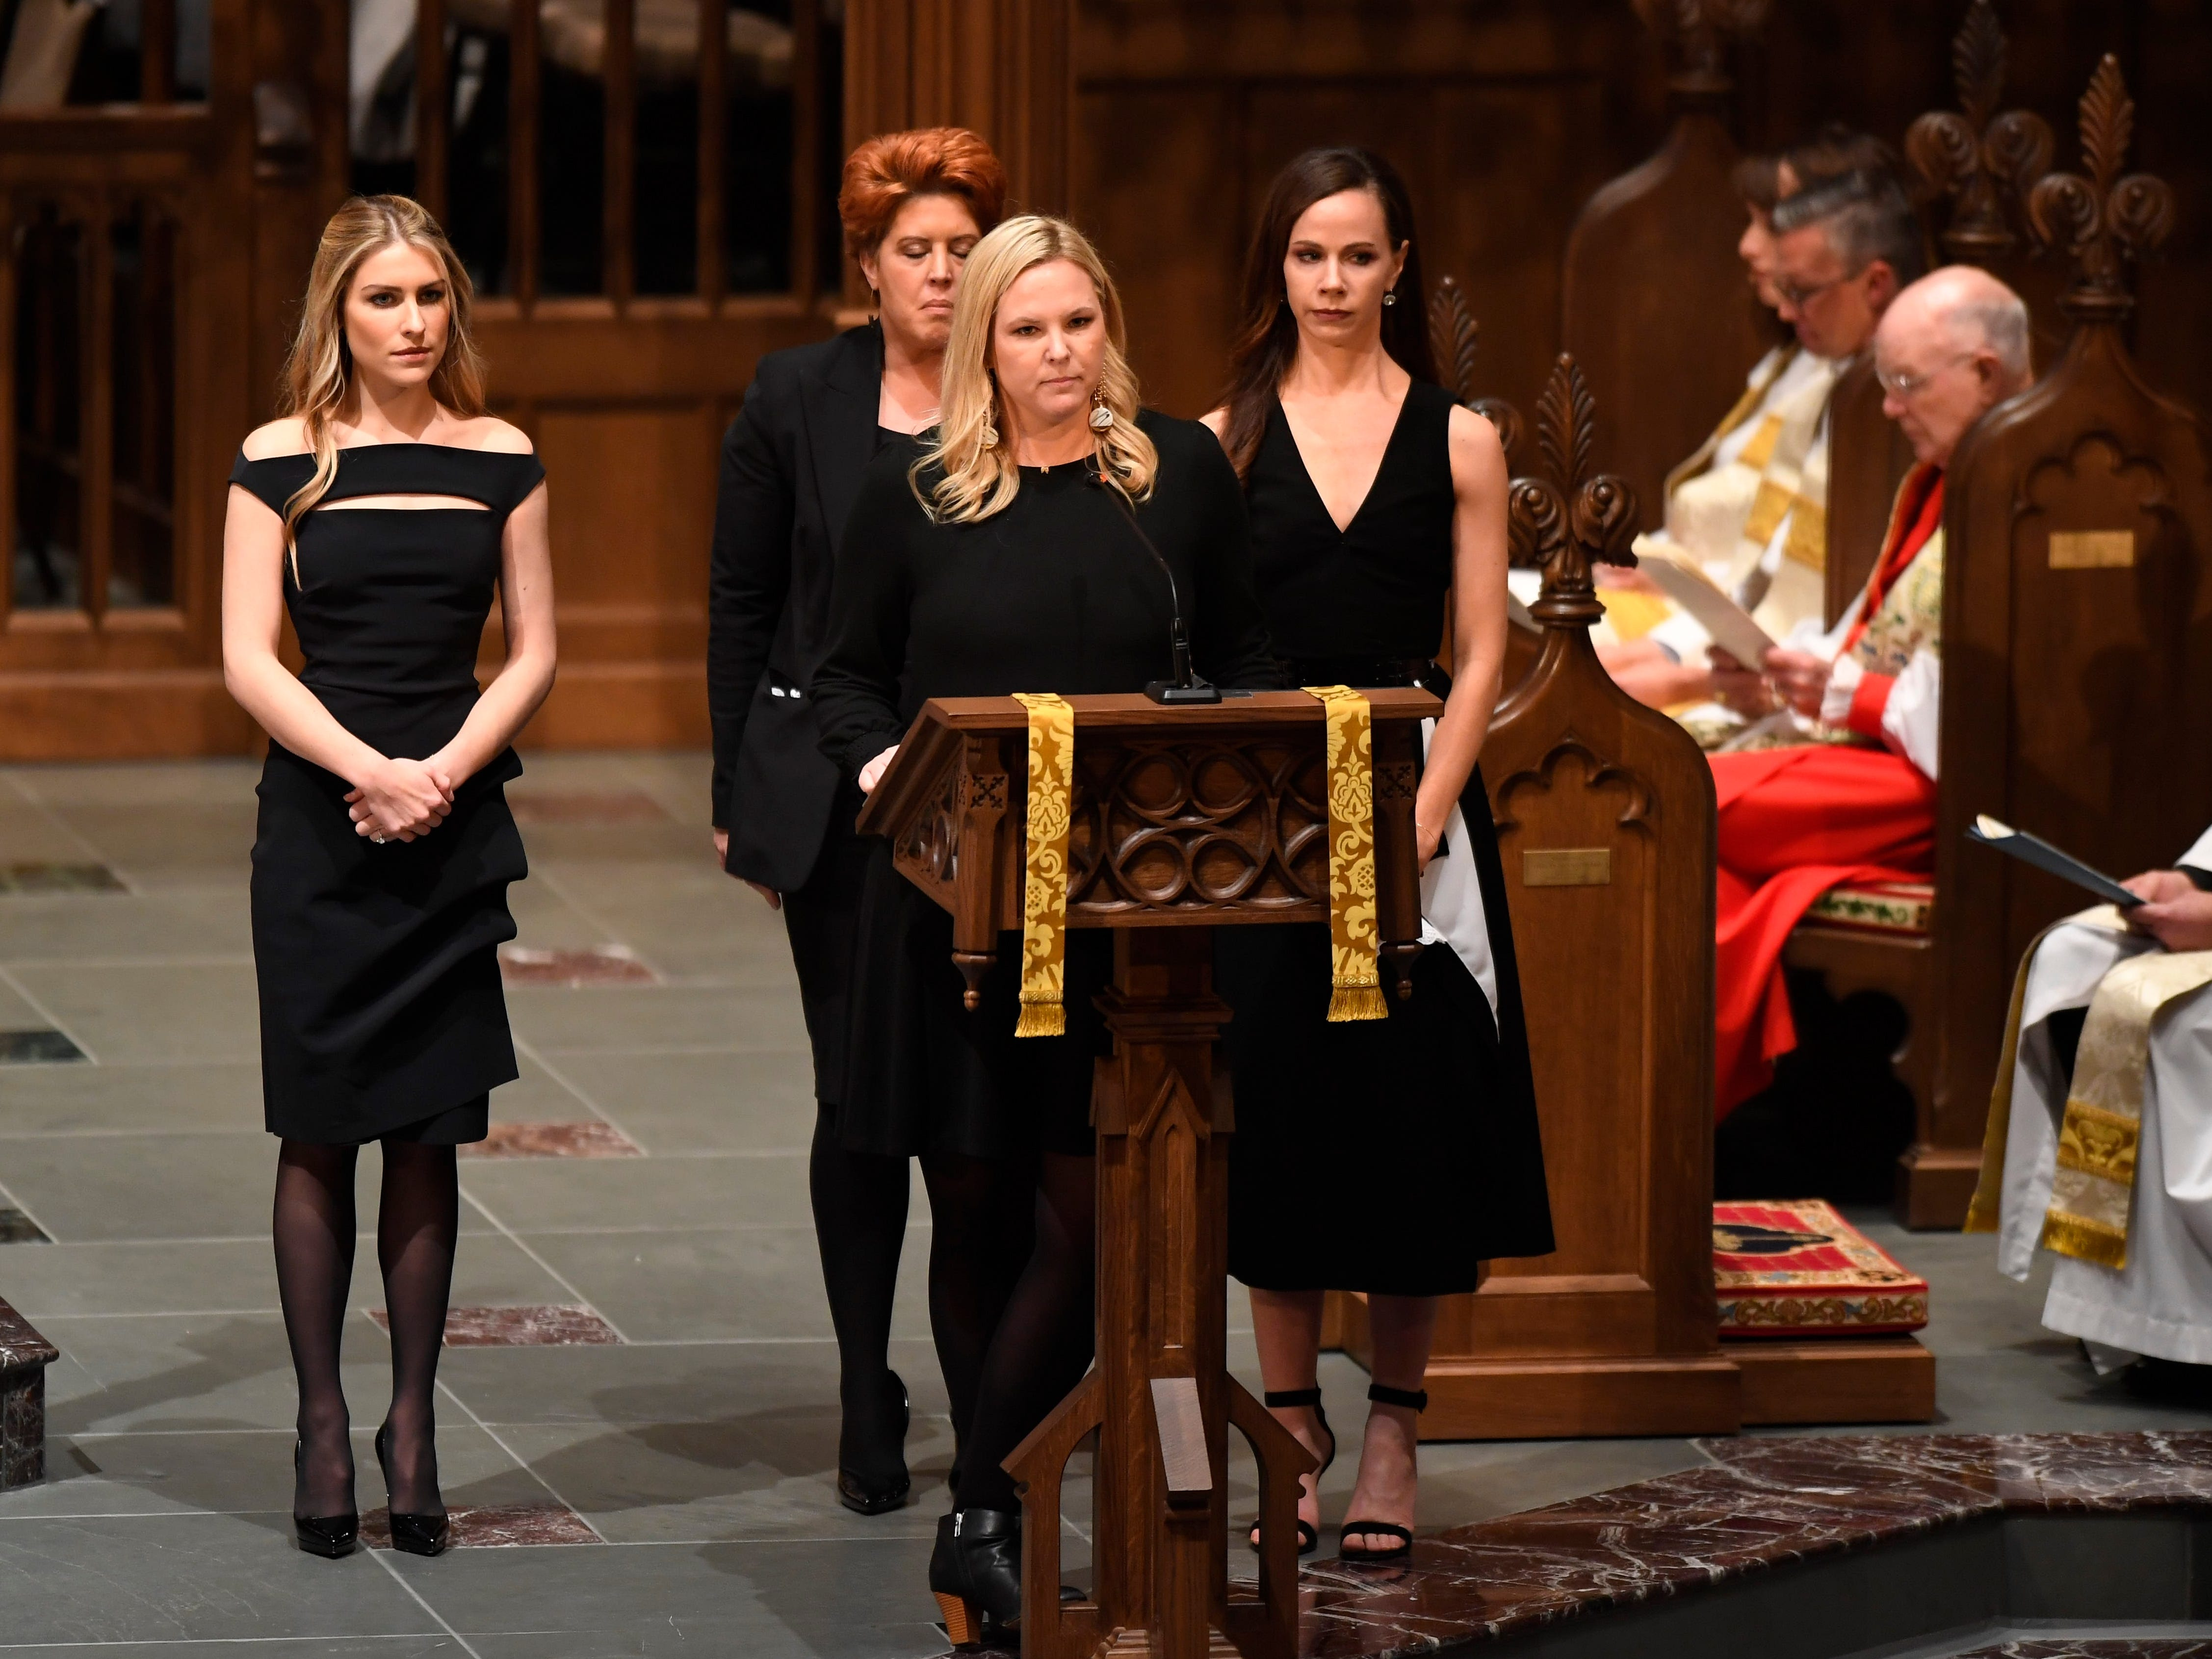 The granddaughters of former President George H.W. Bush speak during his funeral at St. Martin's Episcopal Church, Dec. 6, 2018, in Houston.